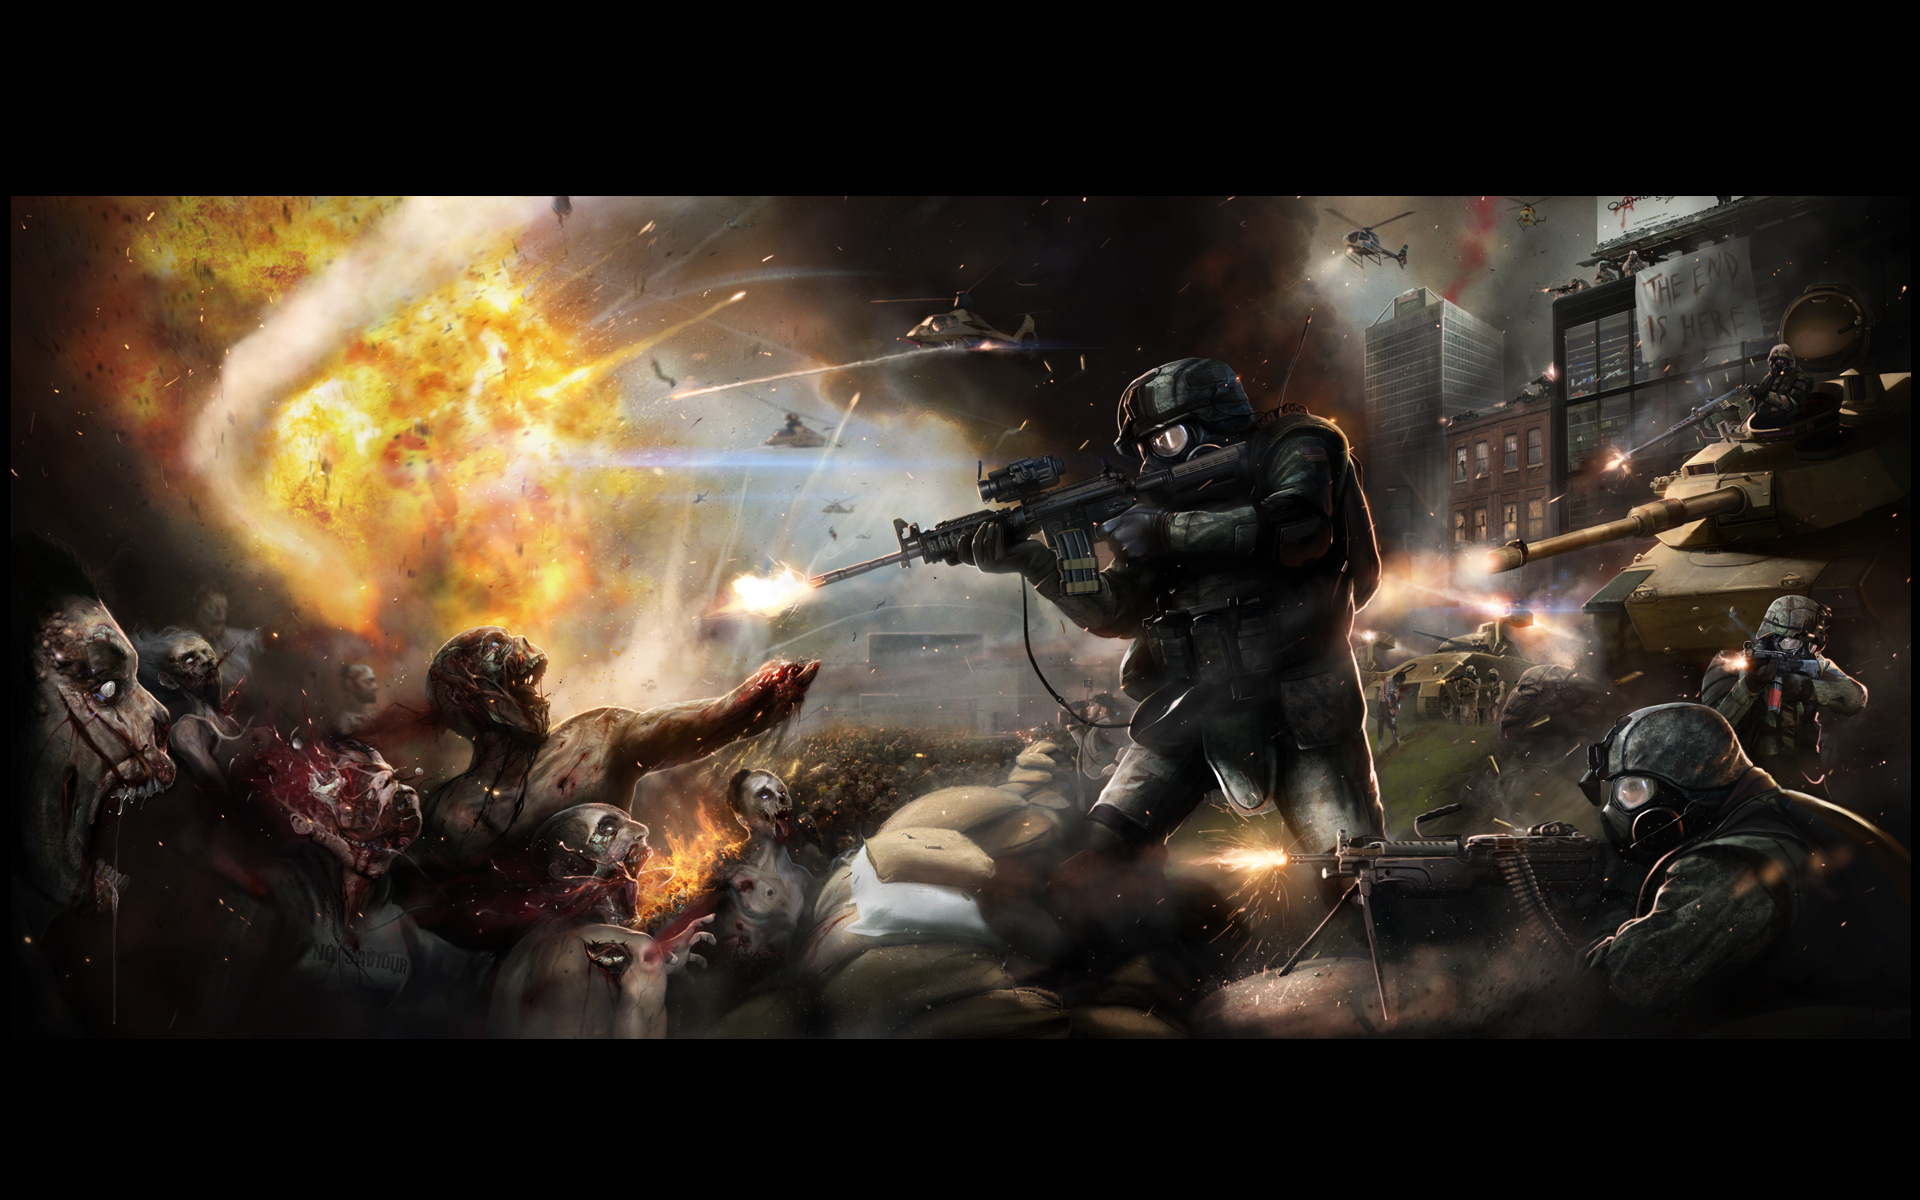 world-war-z-zombie-battle-of-yonkers-wallpaper-zombie-backgroundZombies Wallpaper